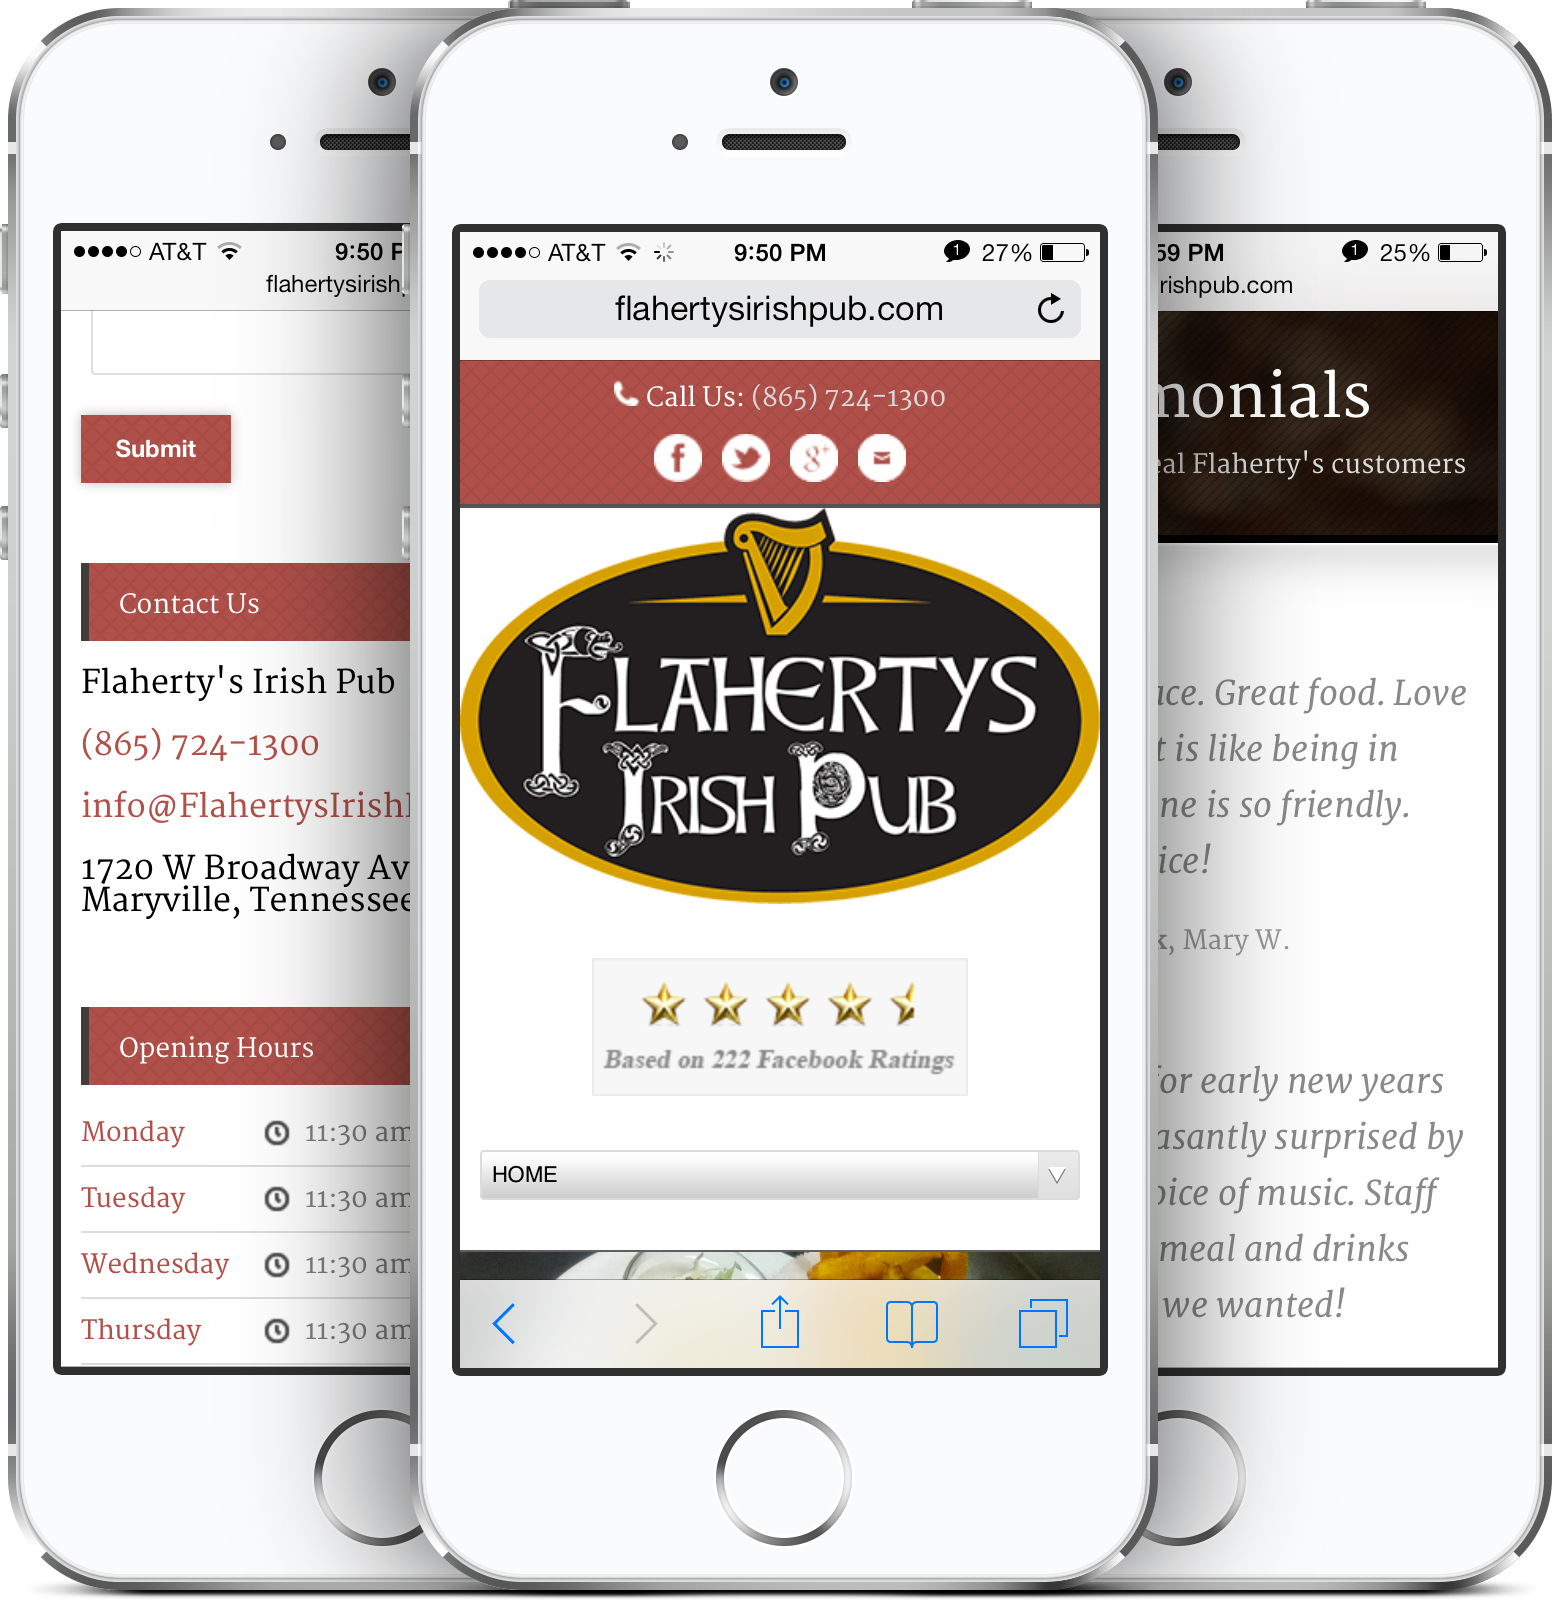 Flaherty's Irish Pub Restaurant Design on an iPhone